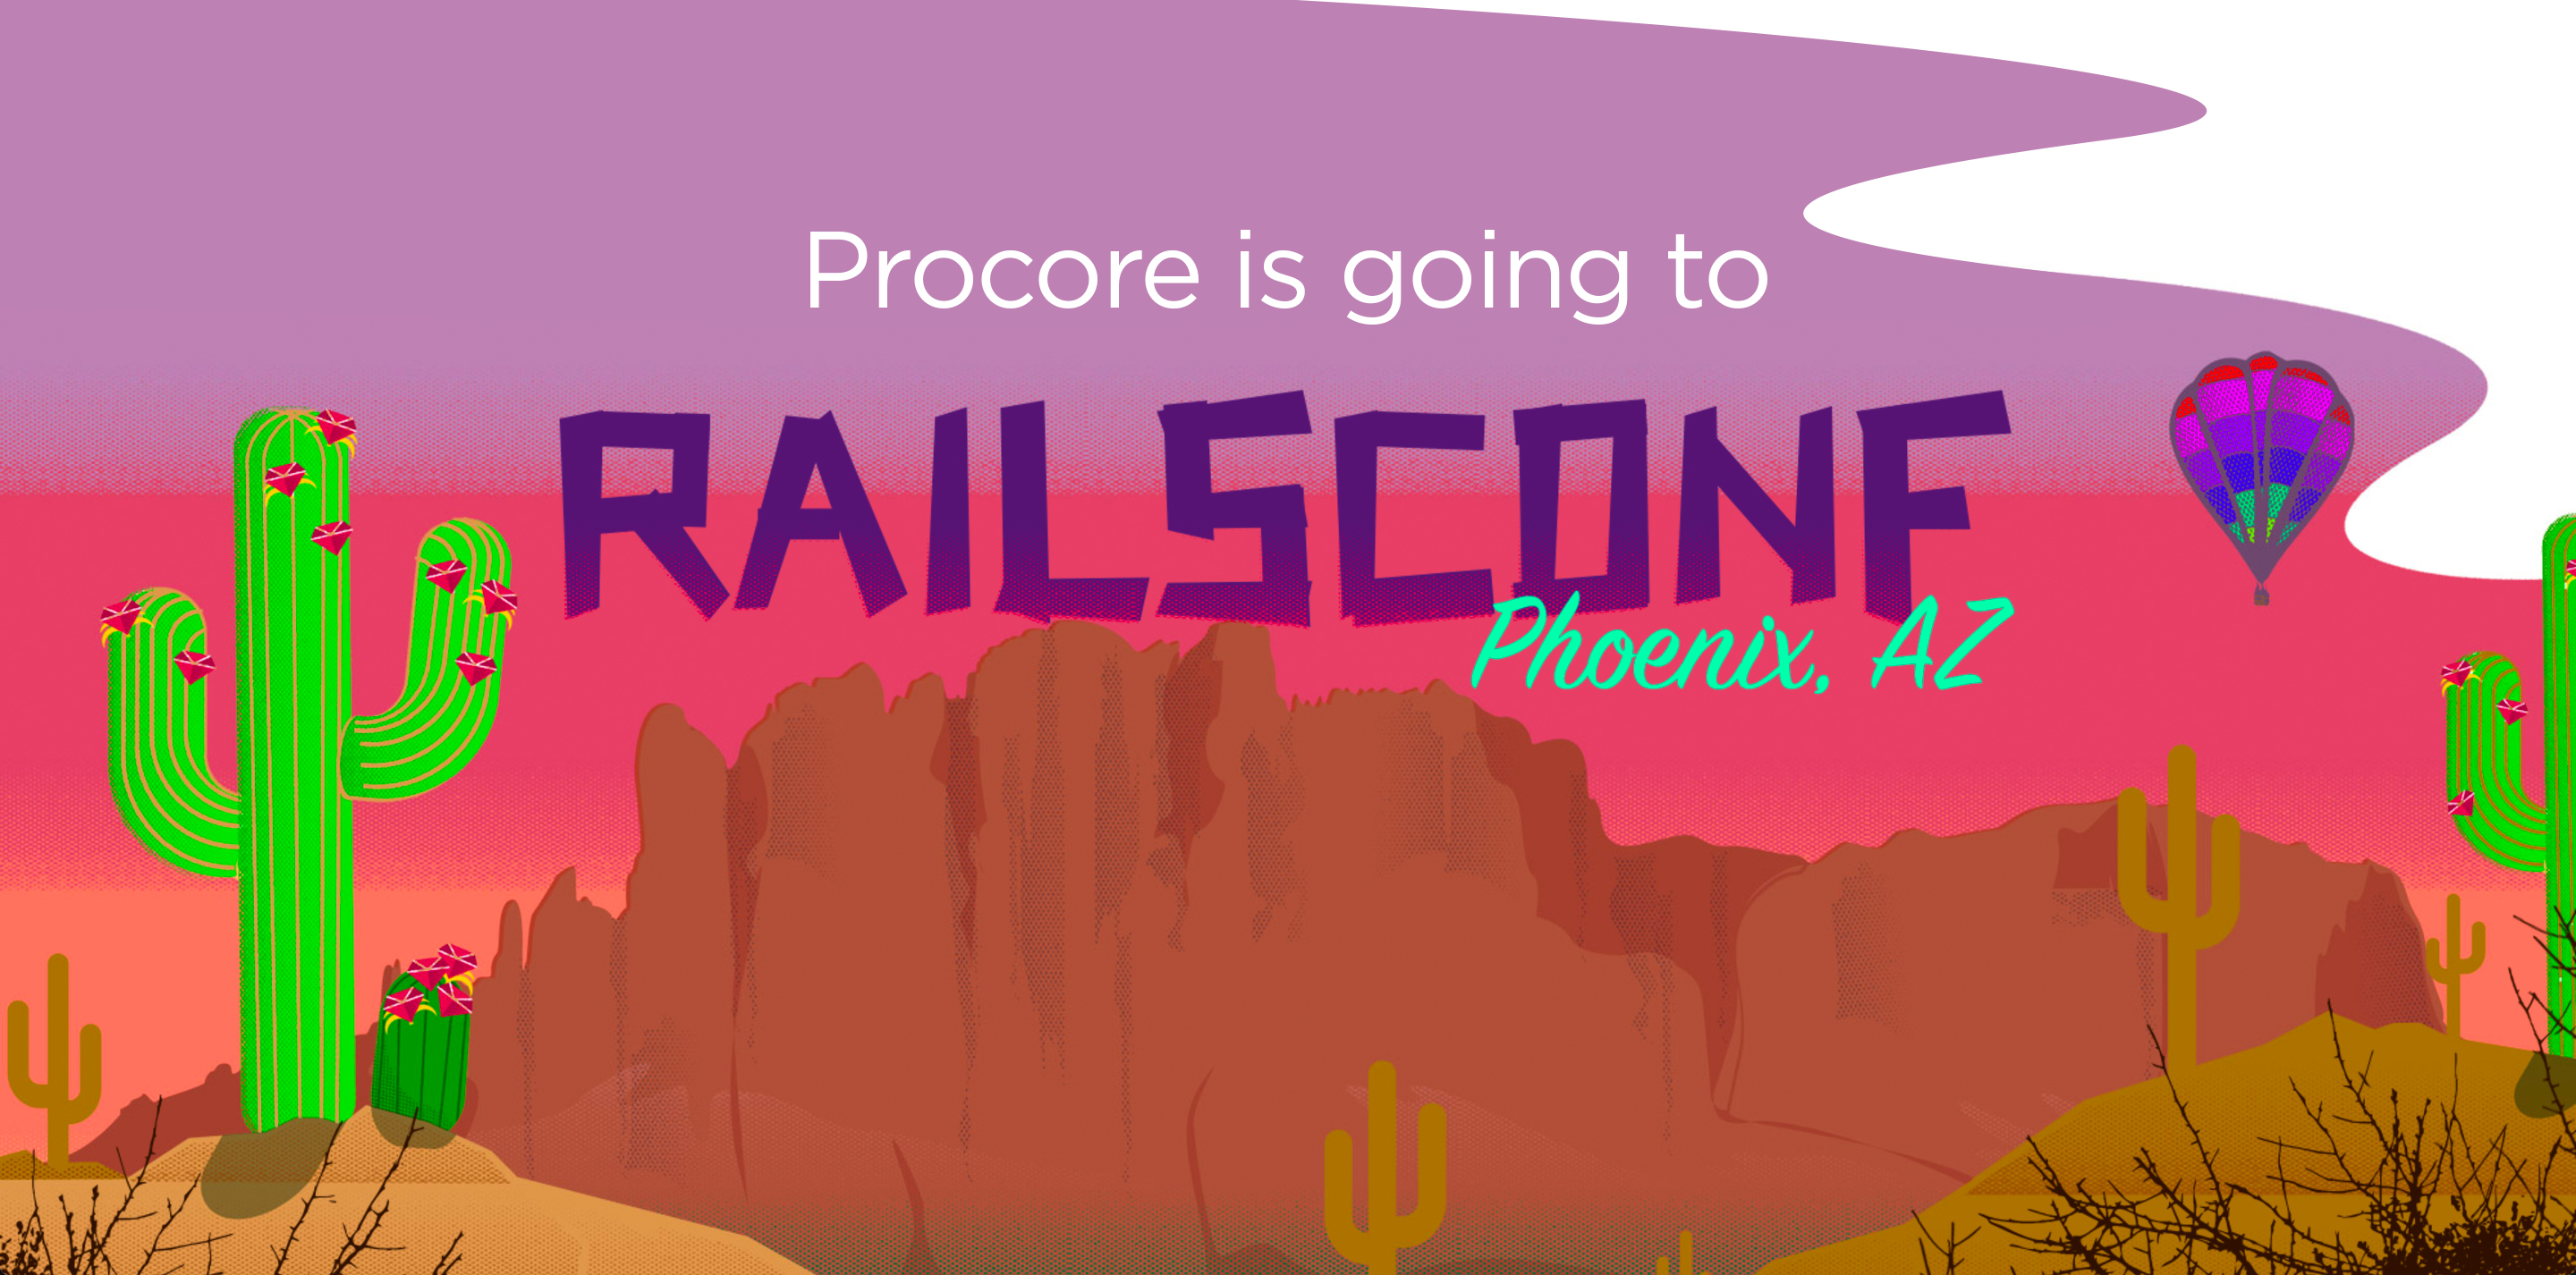 Come Meet-Up with the Procore Engineering Team at RailsConf 2017